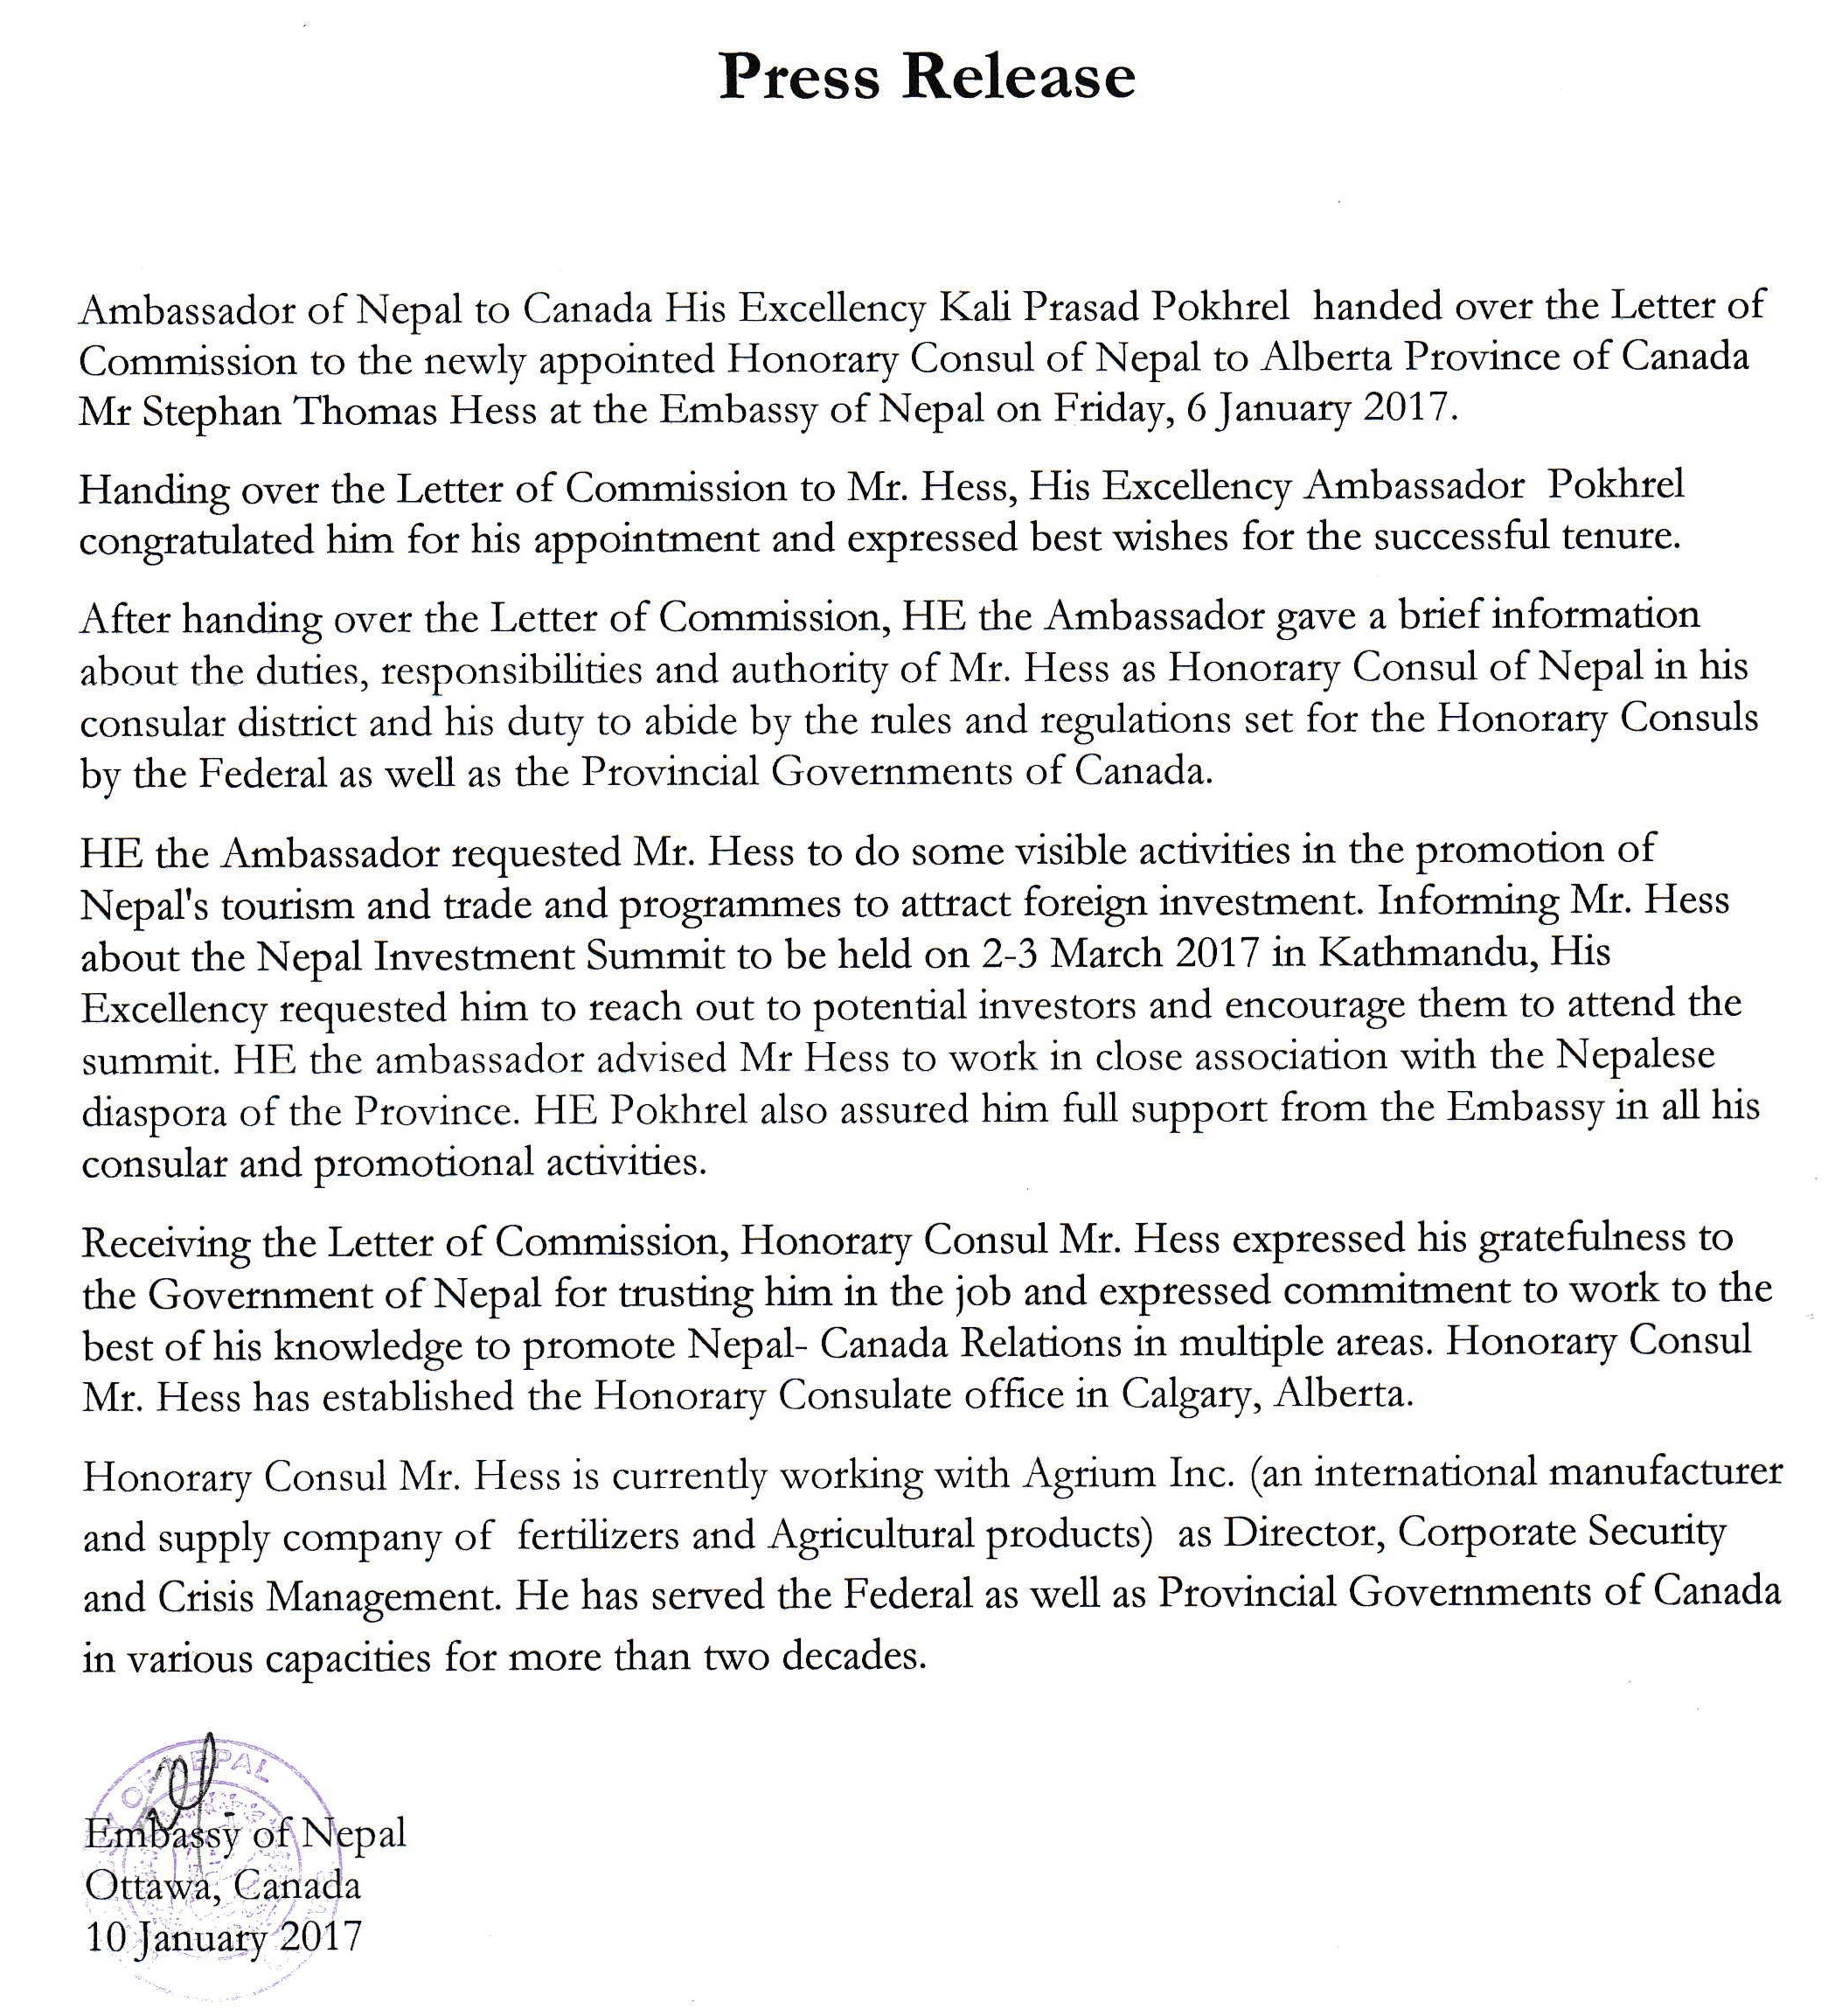 Press Release Issued By The Embassy Of Nepal Ottawa On